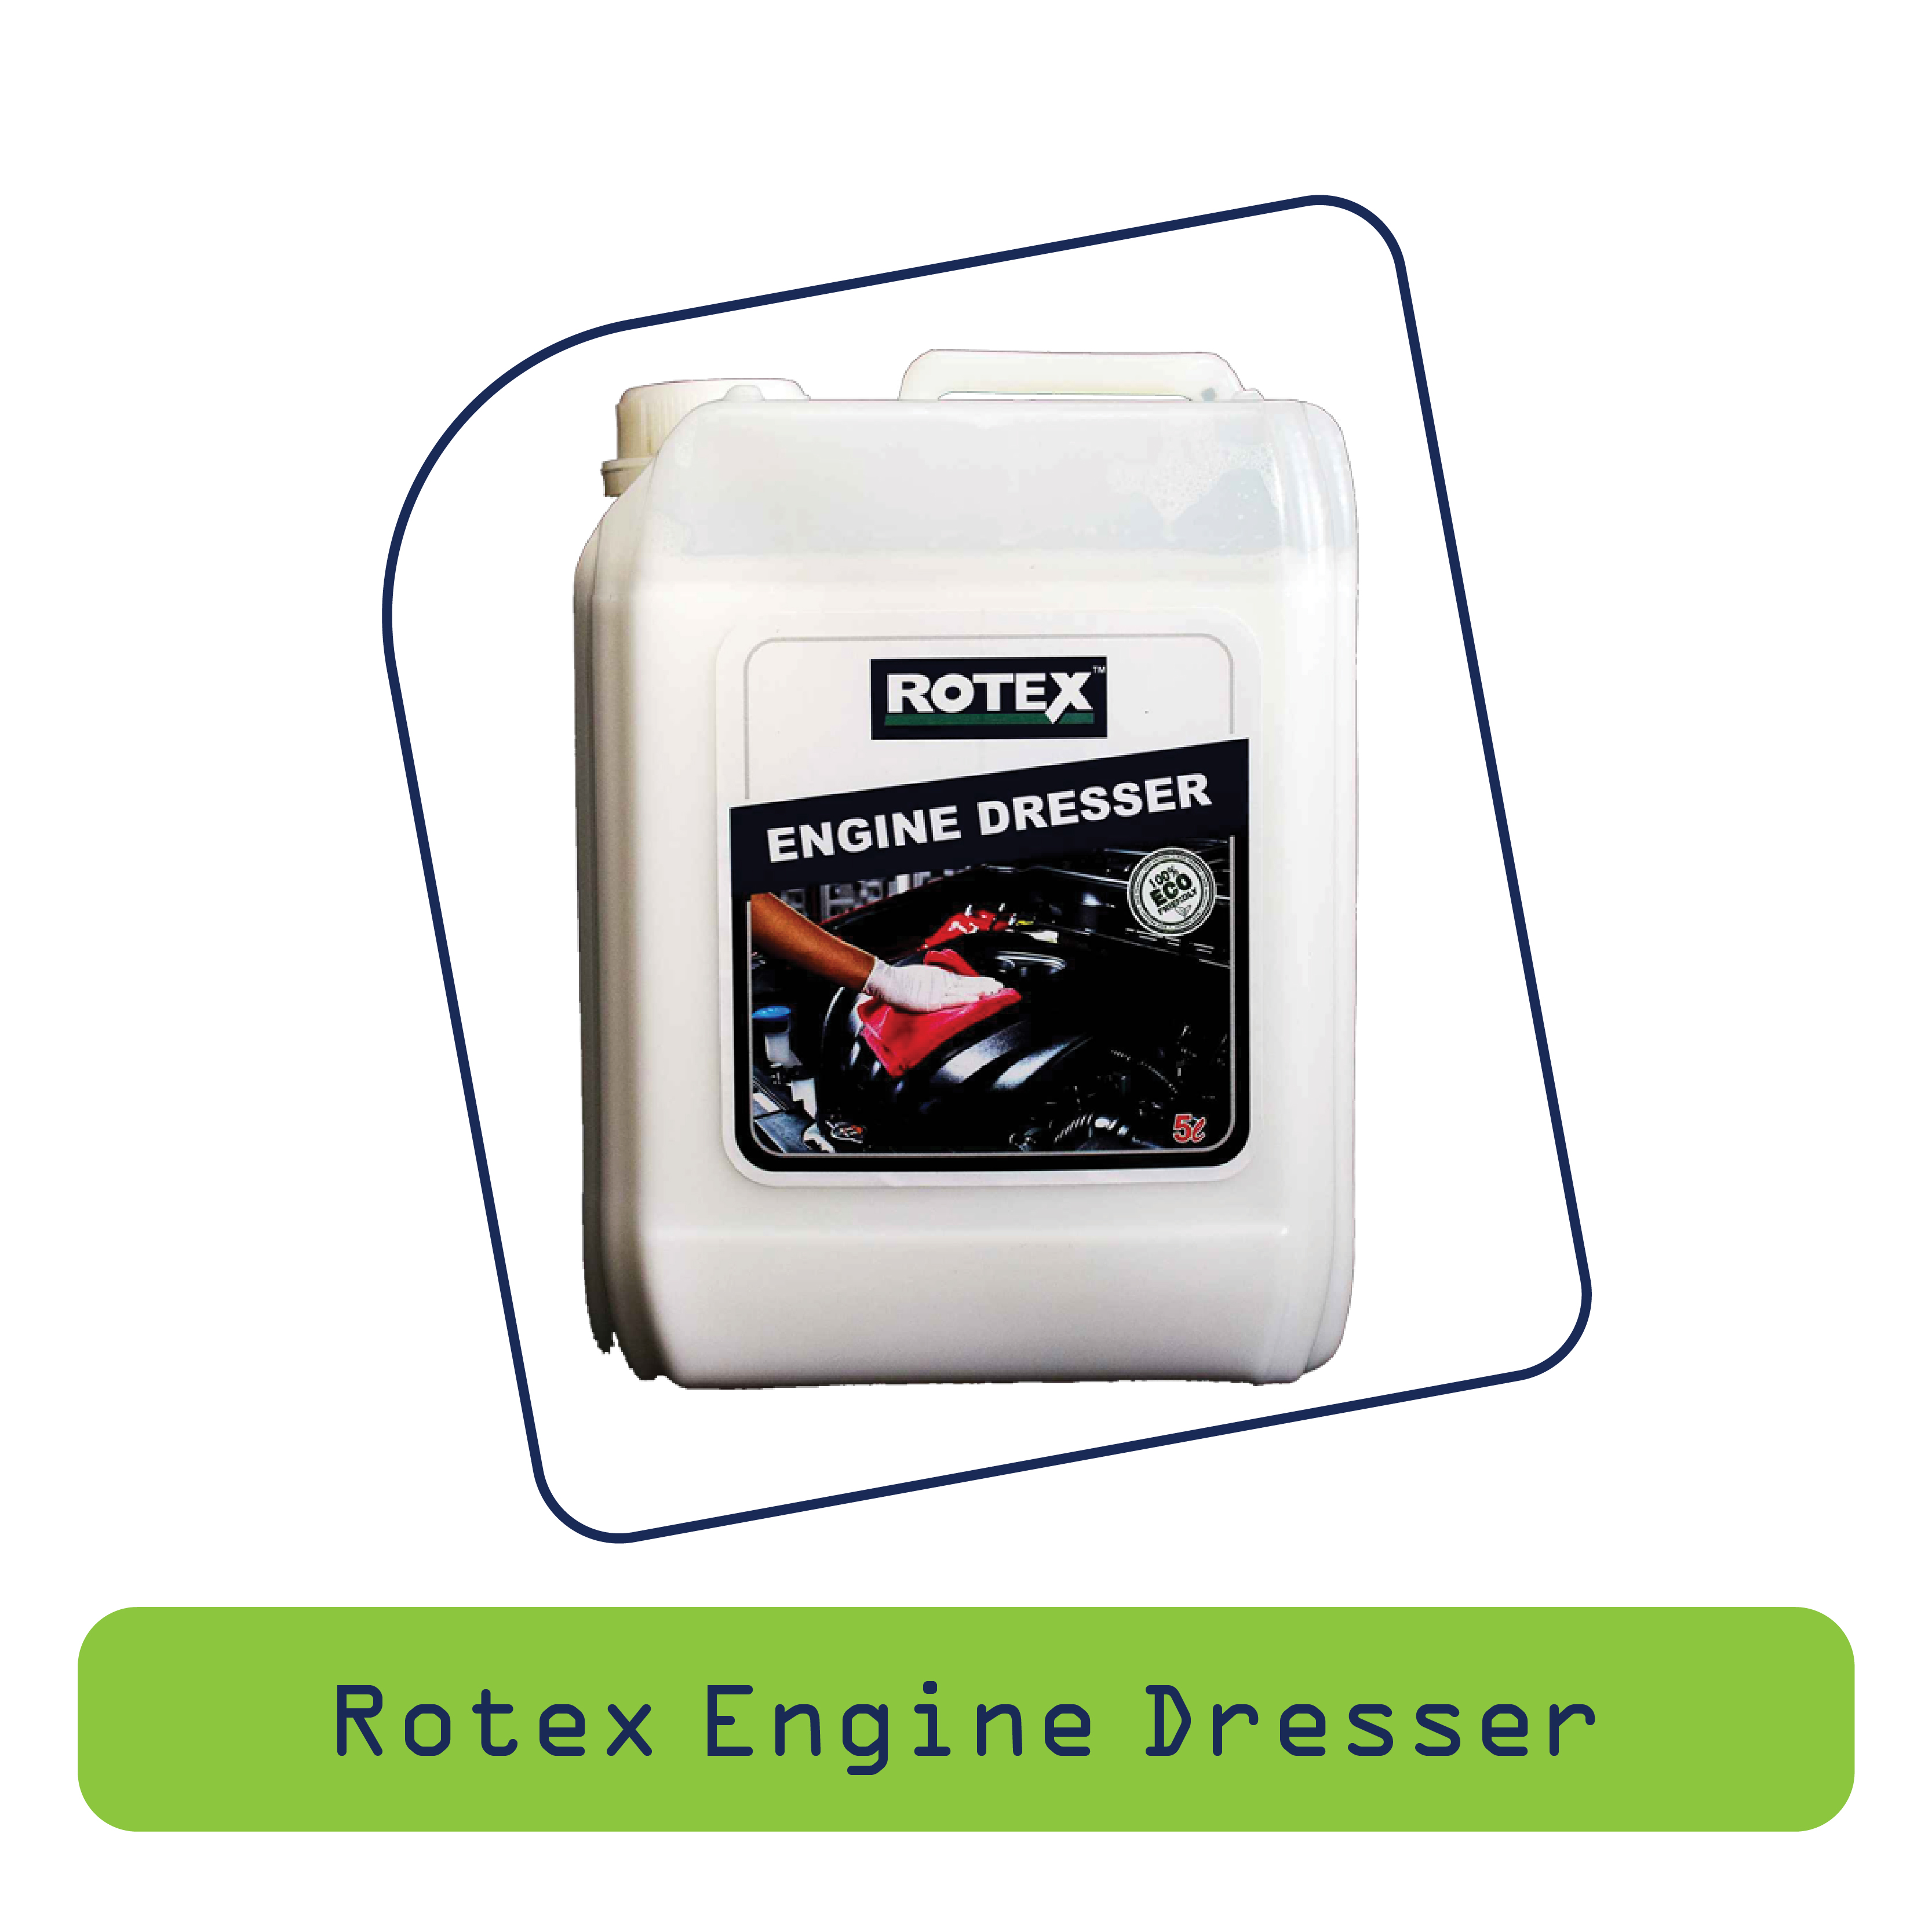 Rotex Engine Dresser